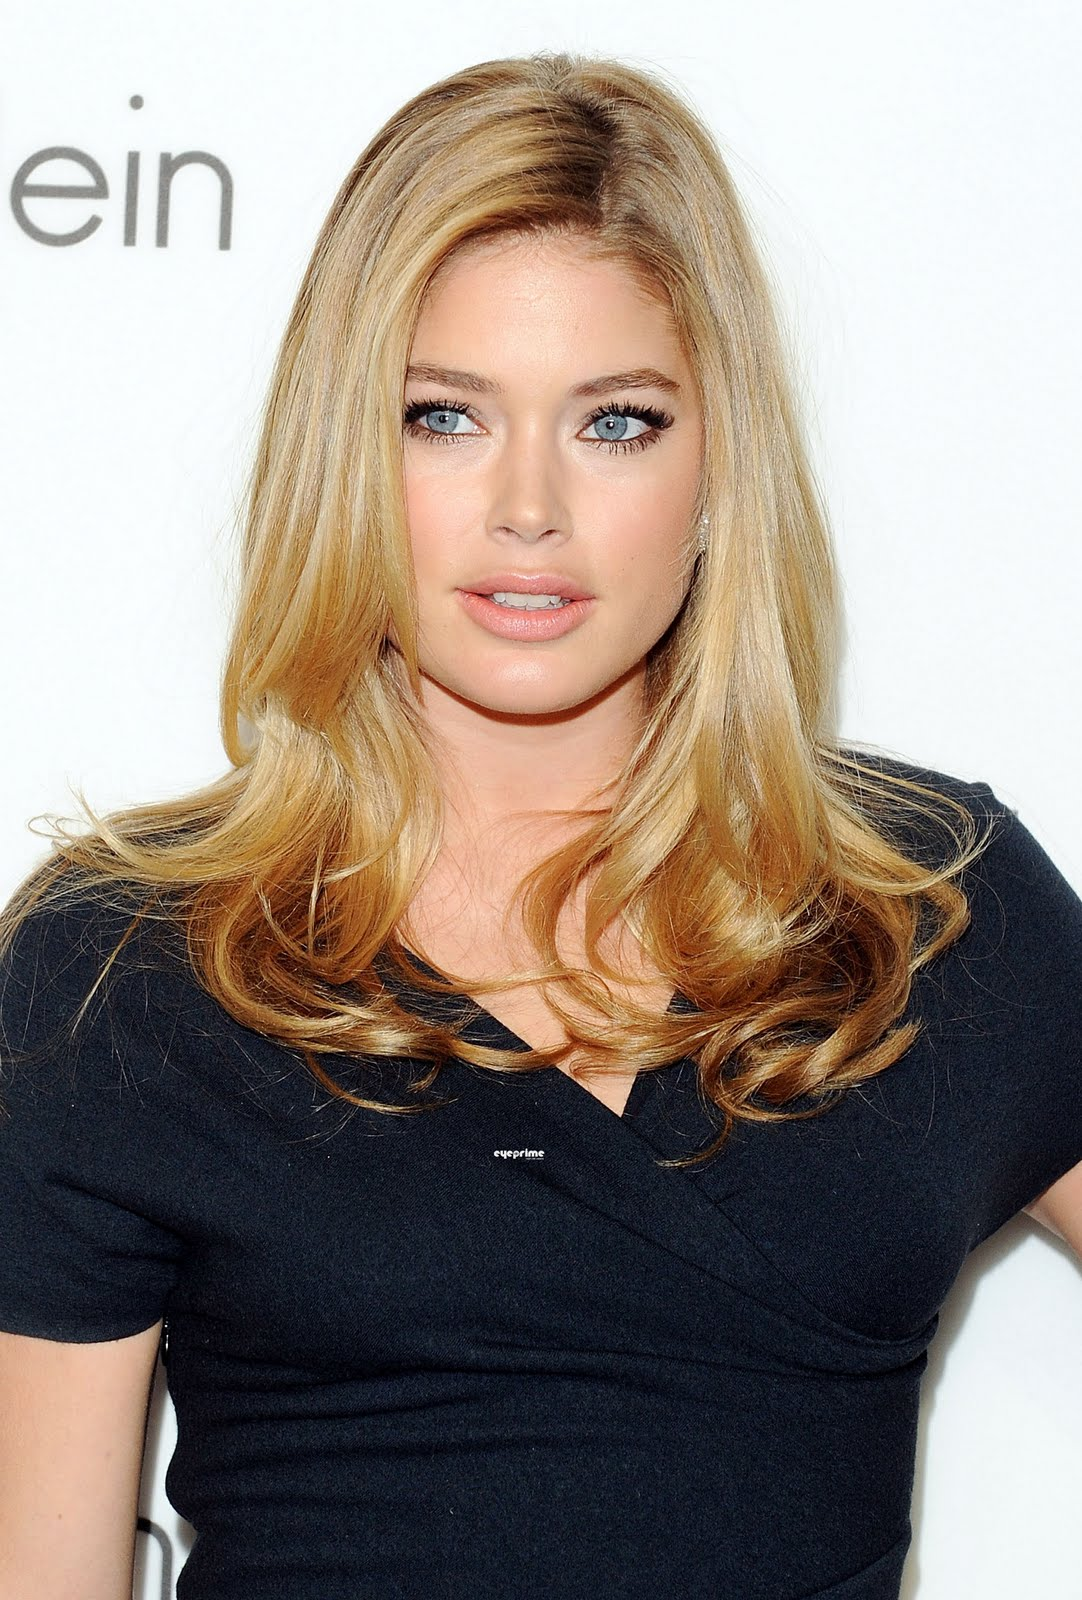 Doutzen Kroes - Picture Actress